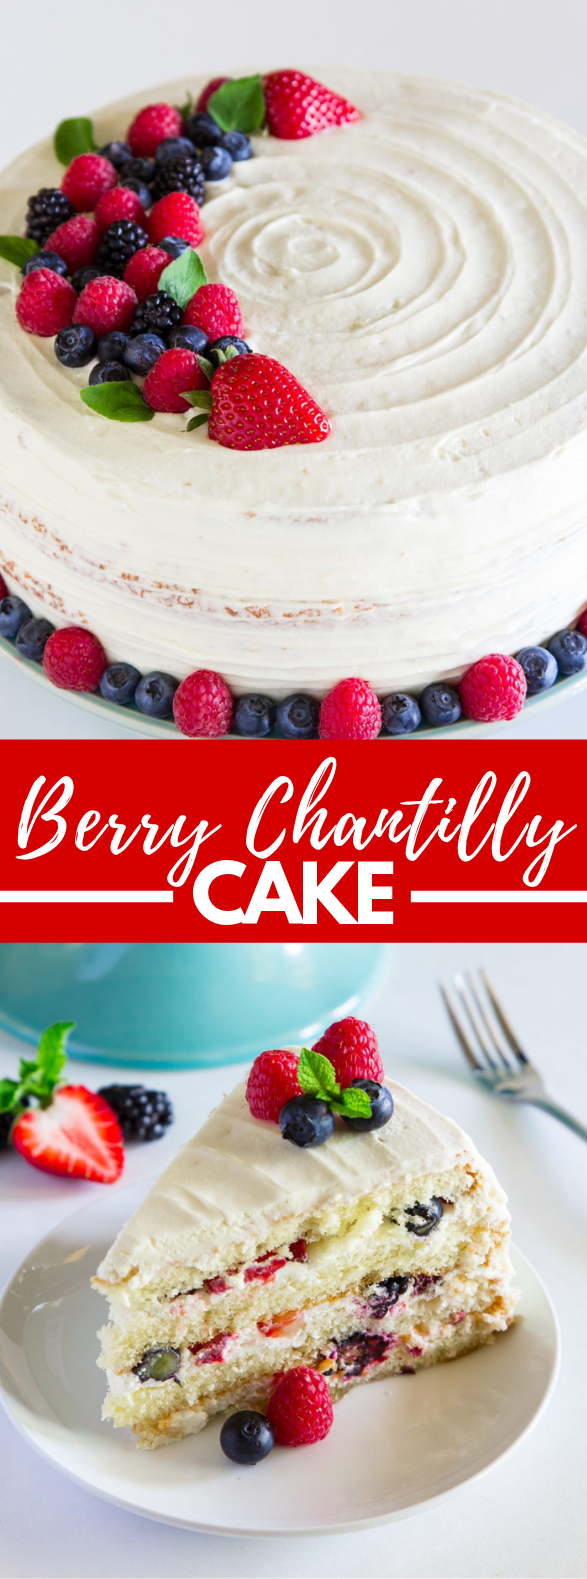 Berry Chantilly Cake #desserts #whitecake